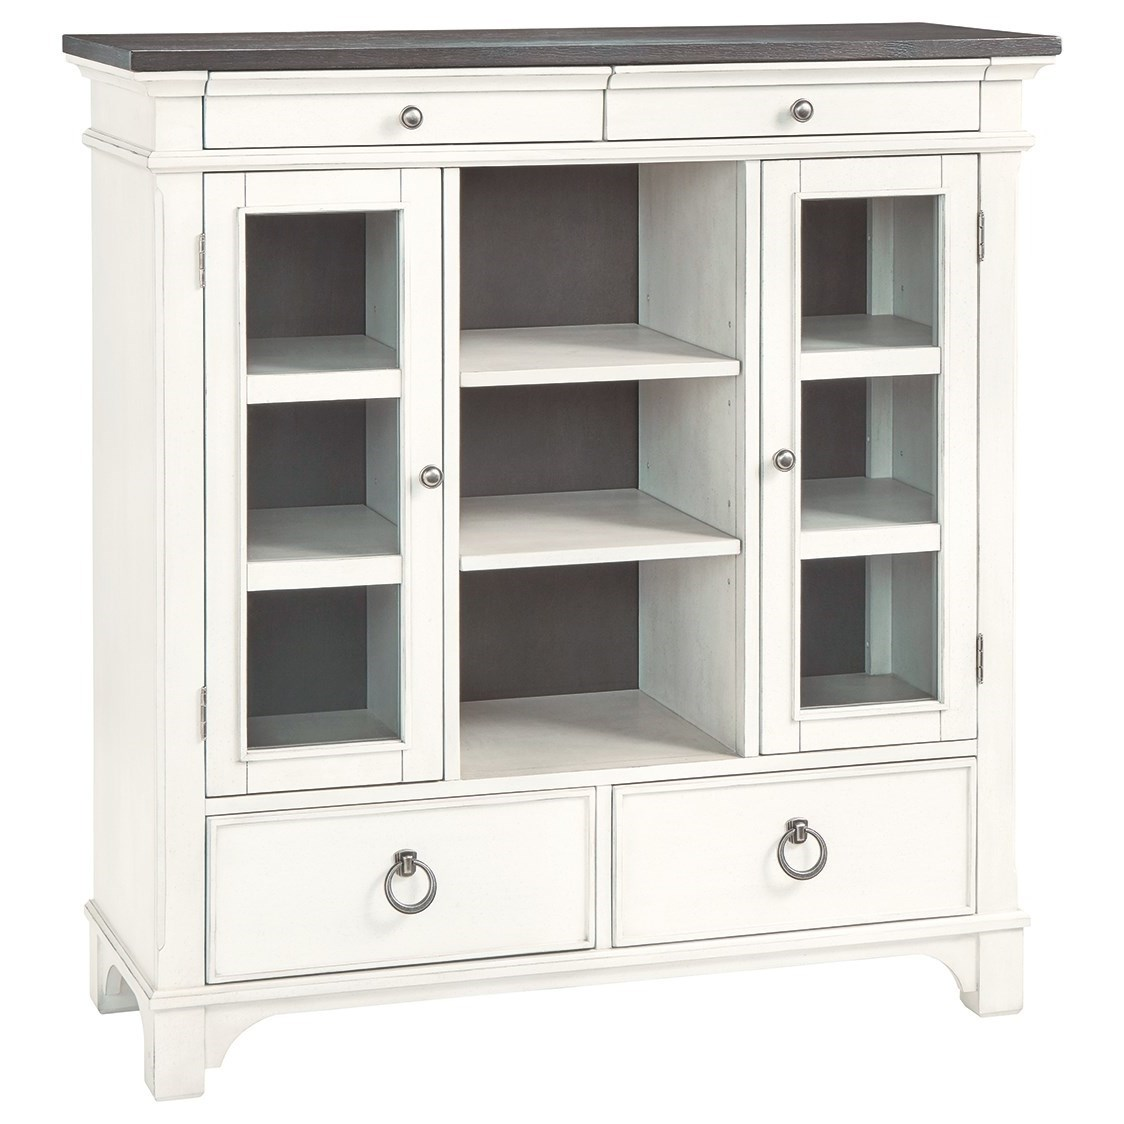 Nashbryn Dining Server by Benchcraft at Value City Furniture